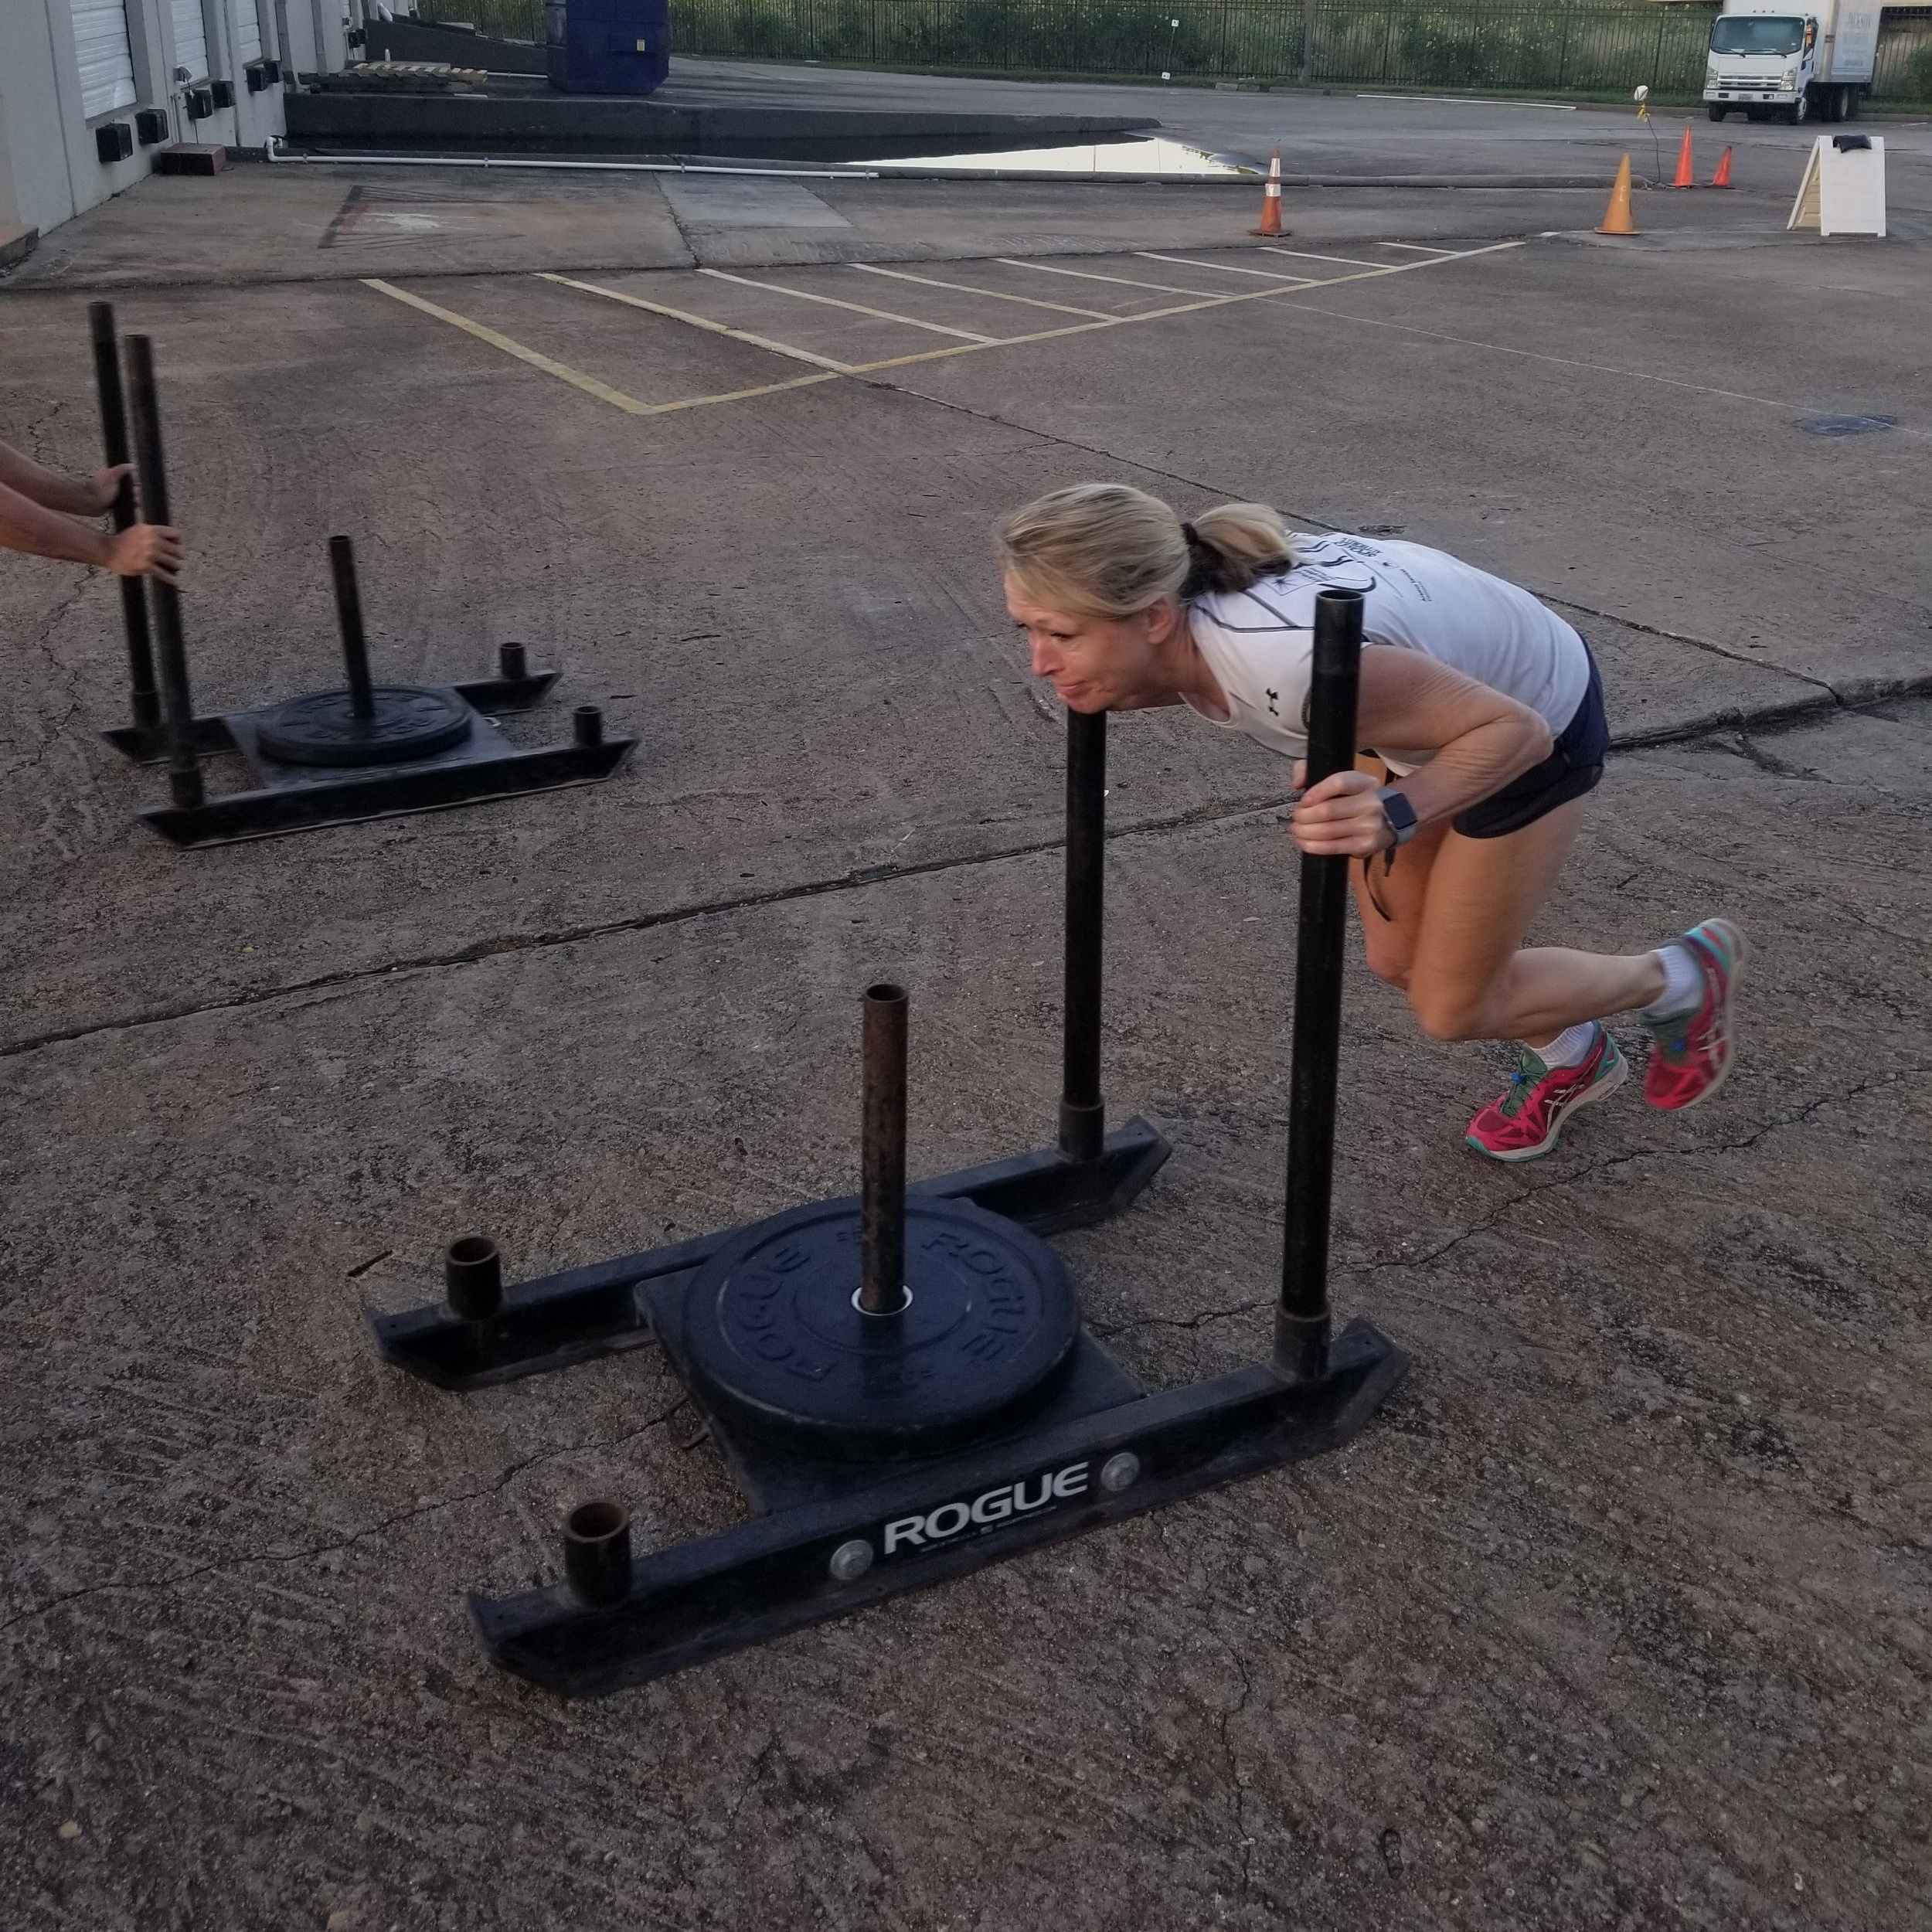 Just want give a shout out to Roswitha. She frequents early morning classes. About a year ago Rosie couldn't push the prowler by itself. Which can be quite frustrating considering there isnt a lighter option. Here she is at 6am this morning doing all 10 rounds of todays prowlers with an extra 25lbs added. She didnt get stronger at the prowler by pushing the prowler she got strong because she is very consistent coming and doing what she can do to get better. Nice job Rosie! Be Positive, Be Patient, and stay humble. The rest will take care of itself.